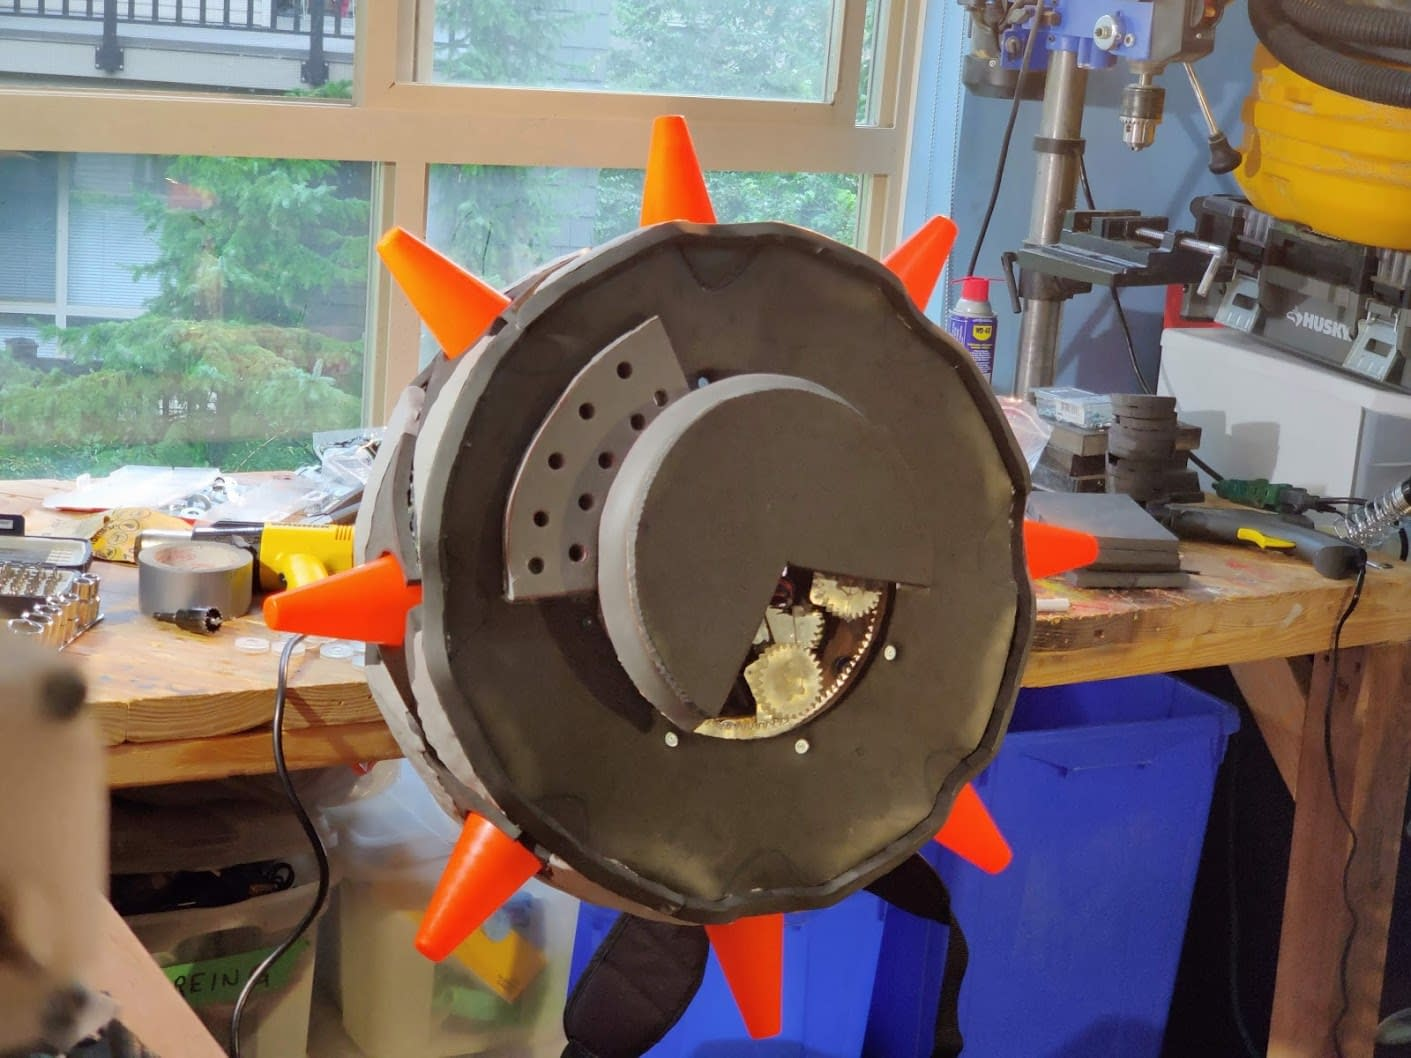 JunkRat Tire with Spikes installed for fit testing